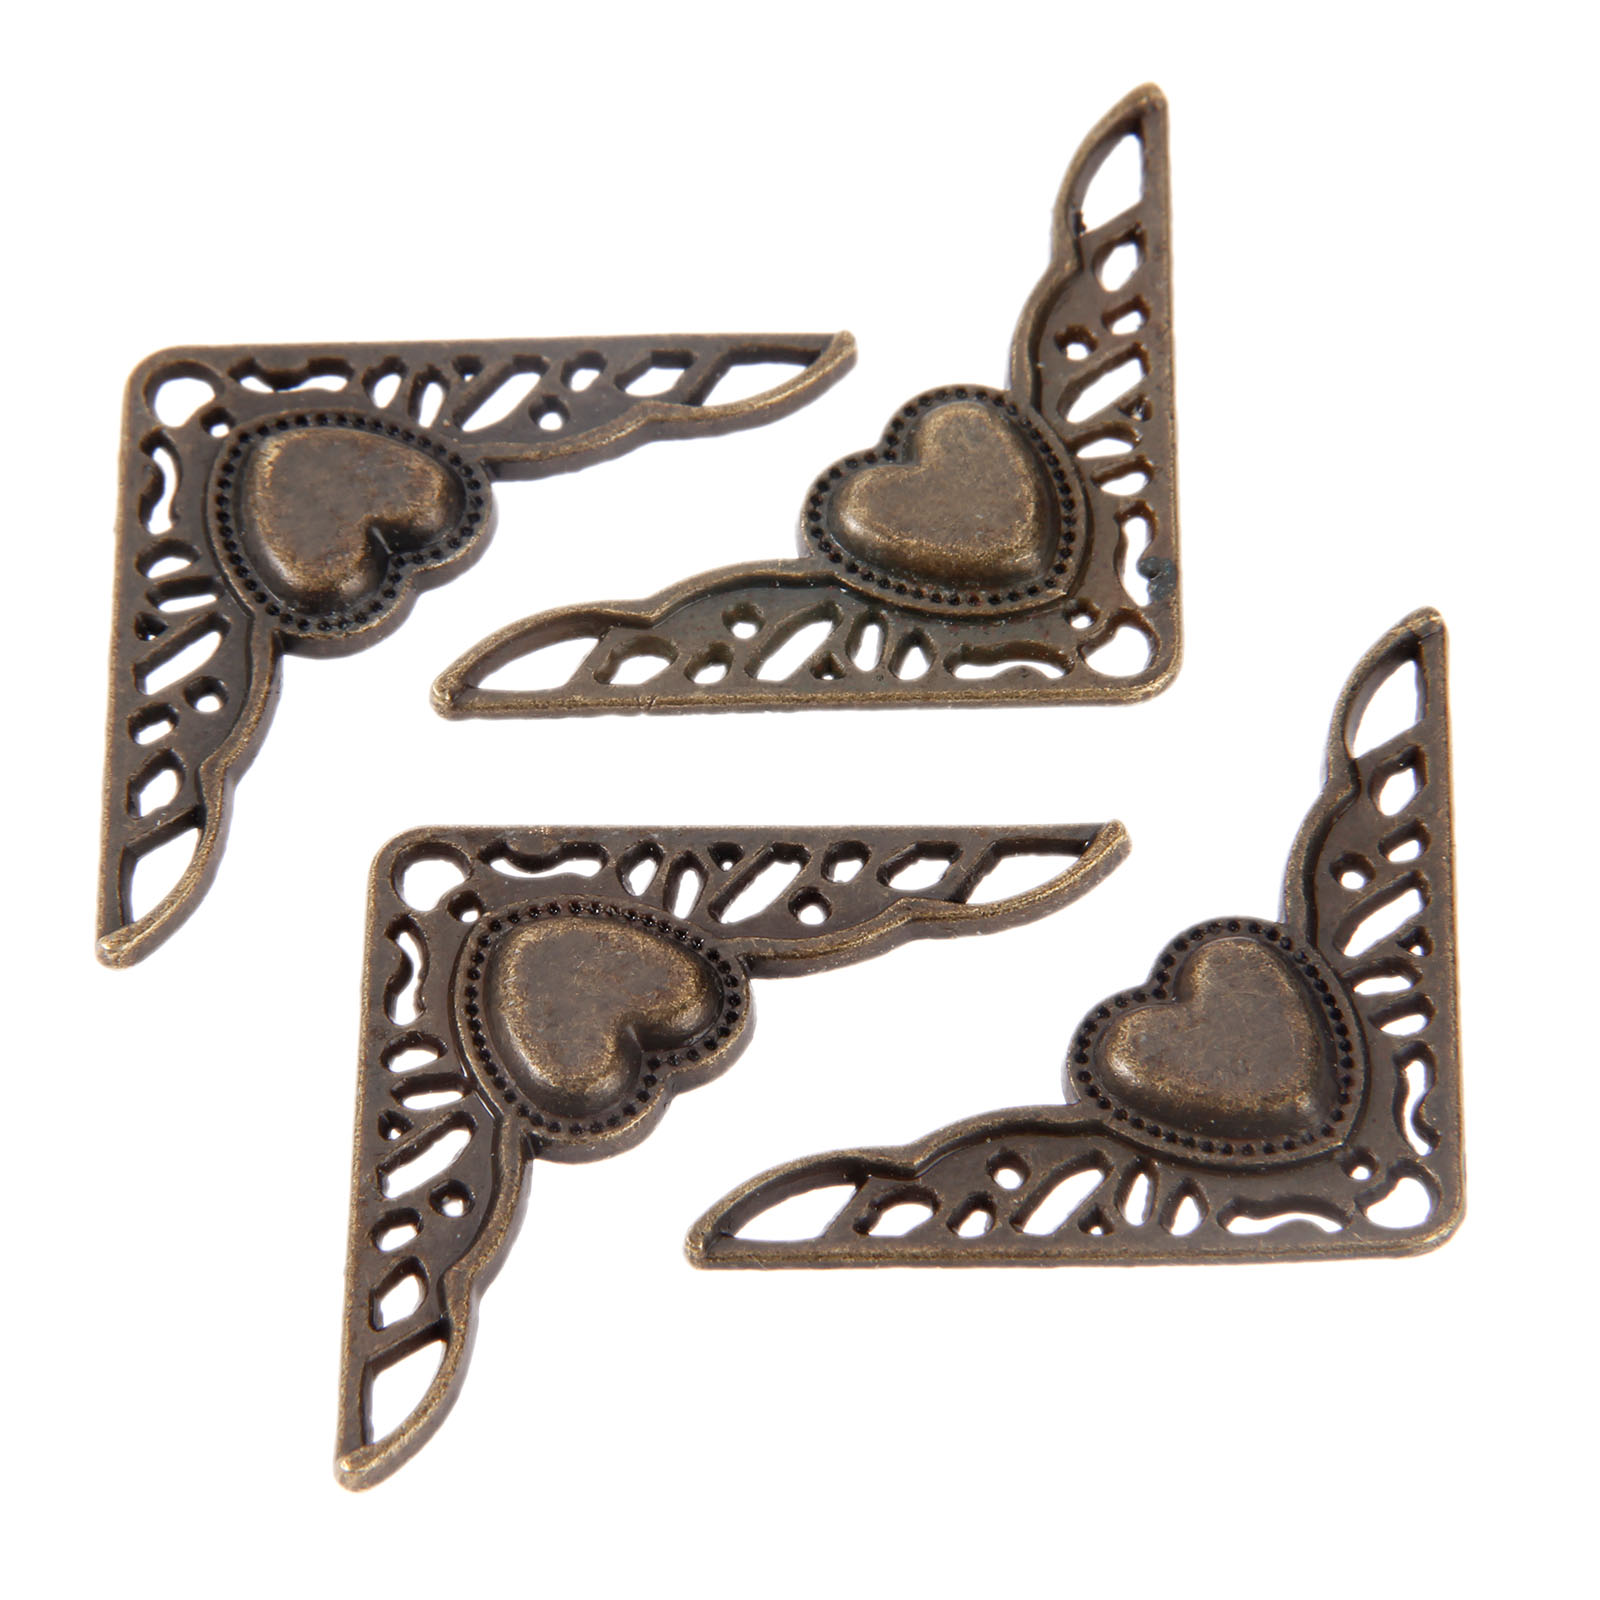 dreld-4pcs-wood-box-feet-leg-corner-protector-guard-metal-crafts-decorative-bracket-for-furniture-hardware-antique-bronze-35mm